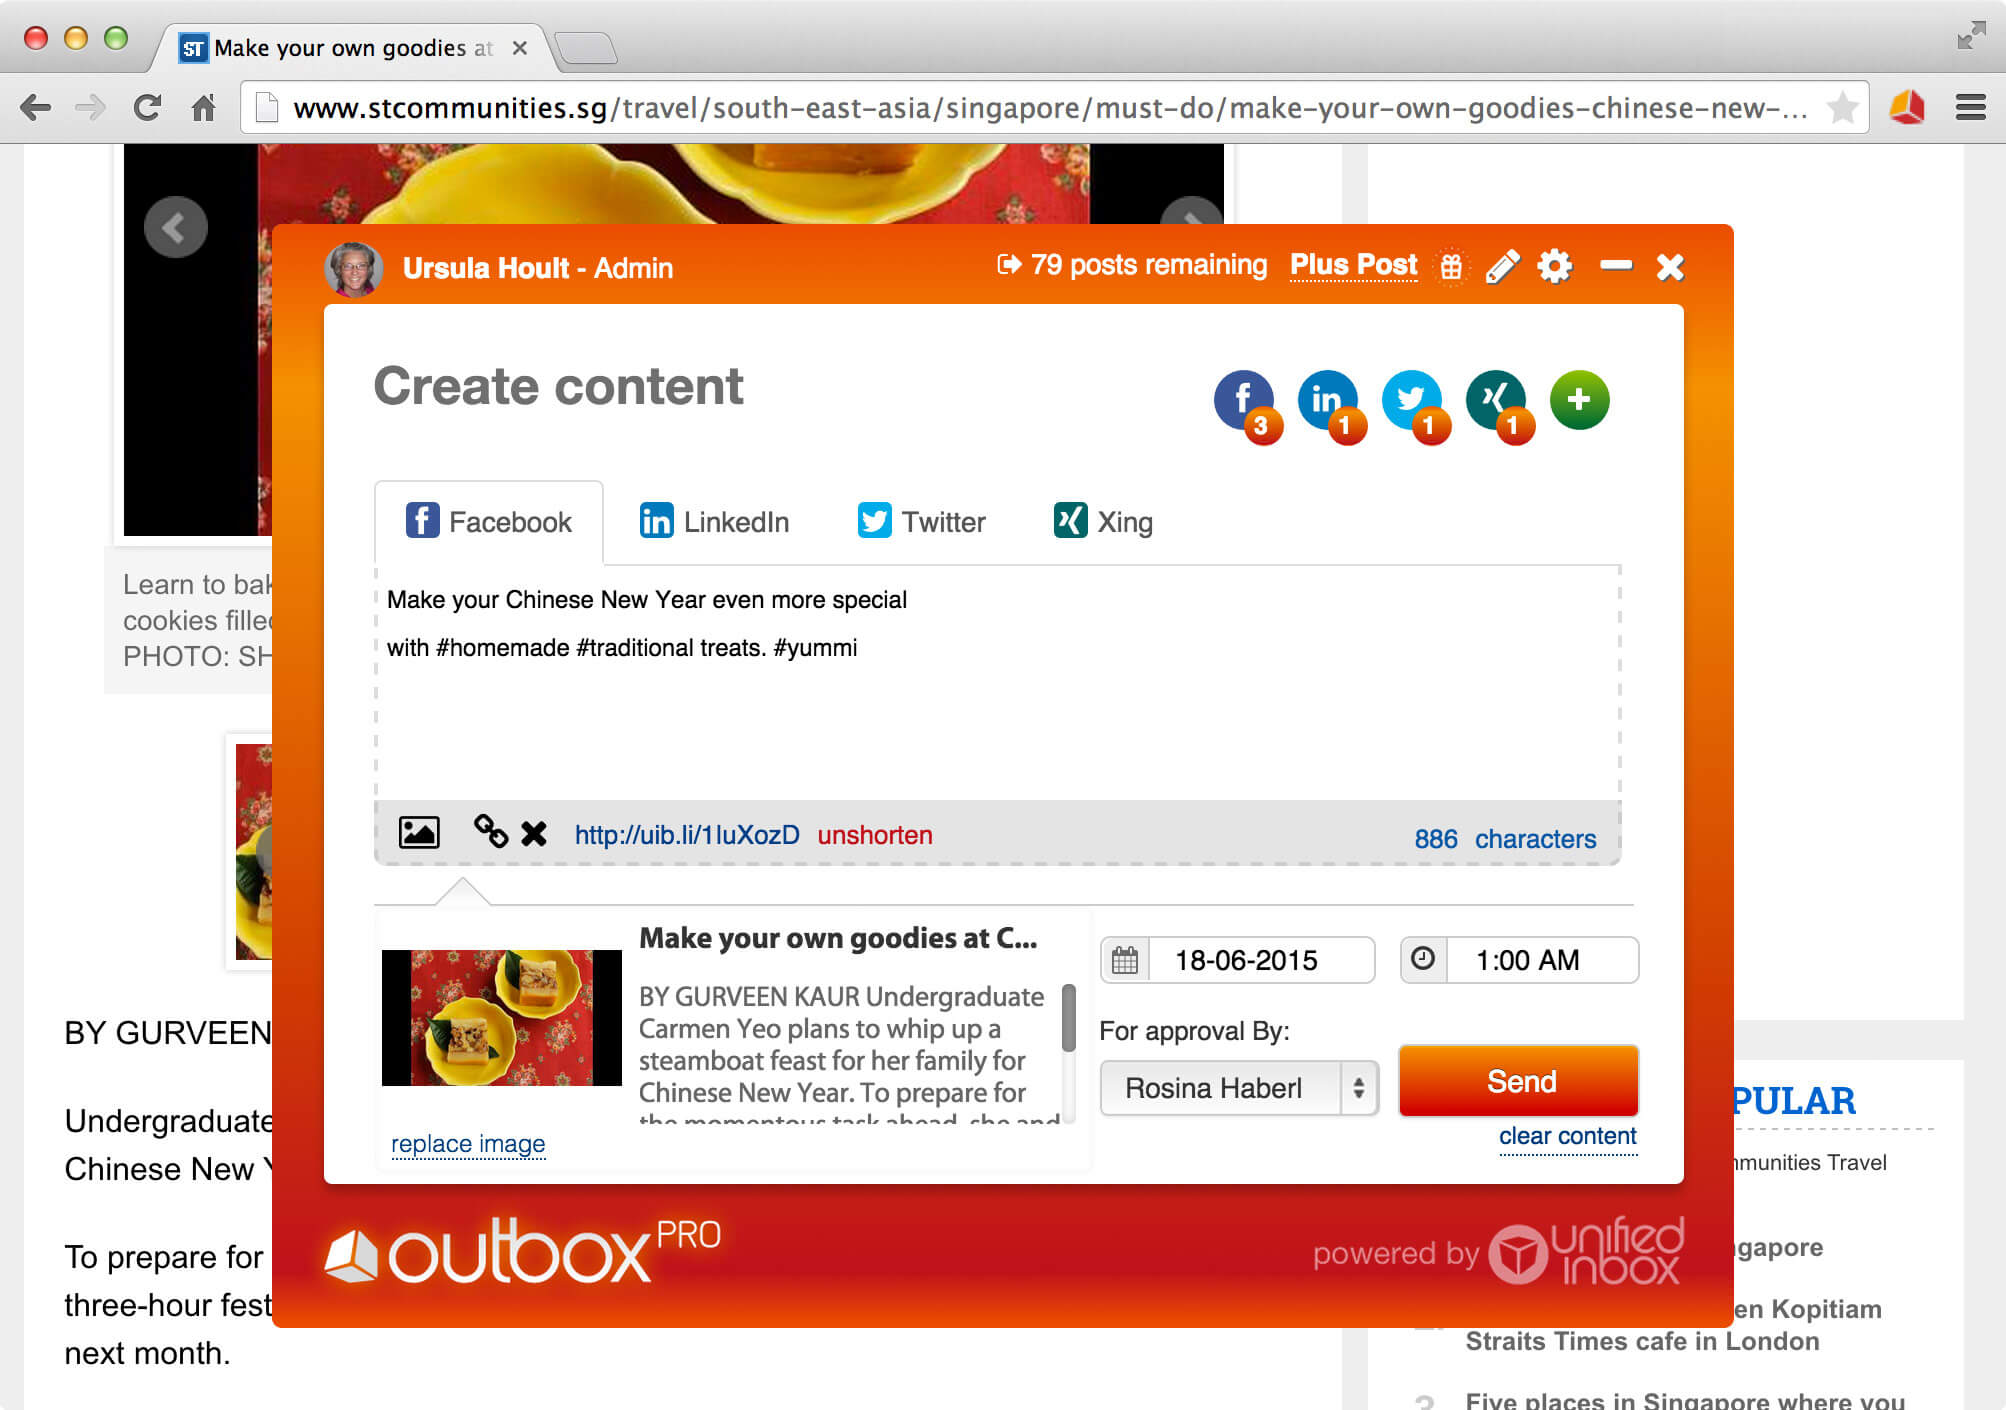 Outbox Pro is one of a few essential online tools used to social media automation.